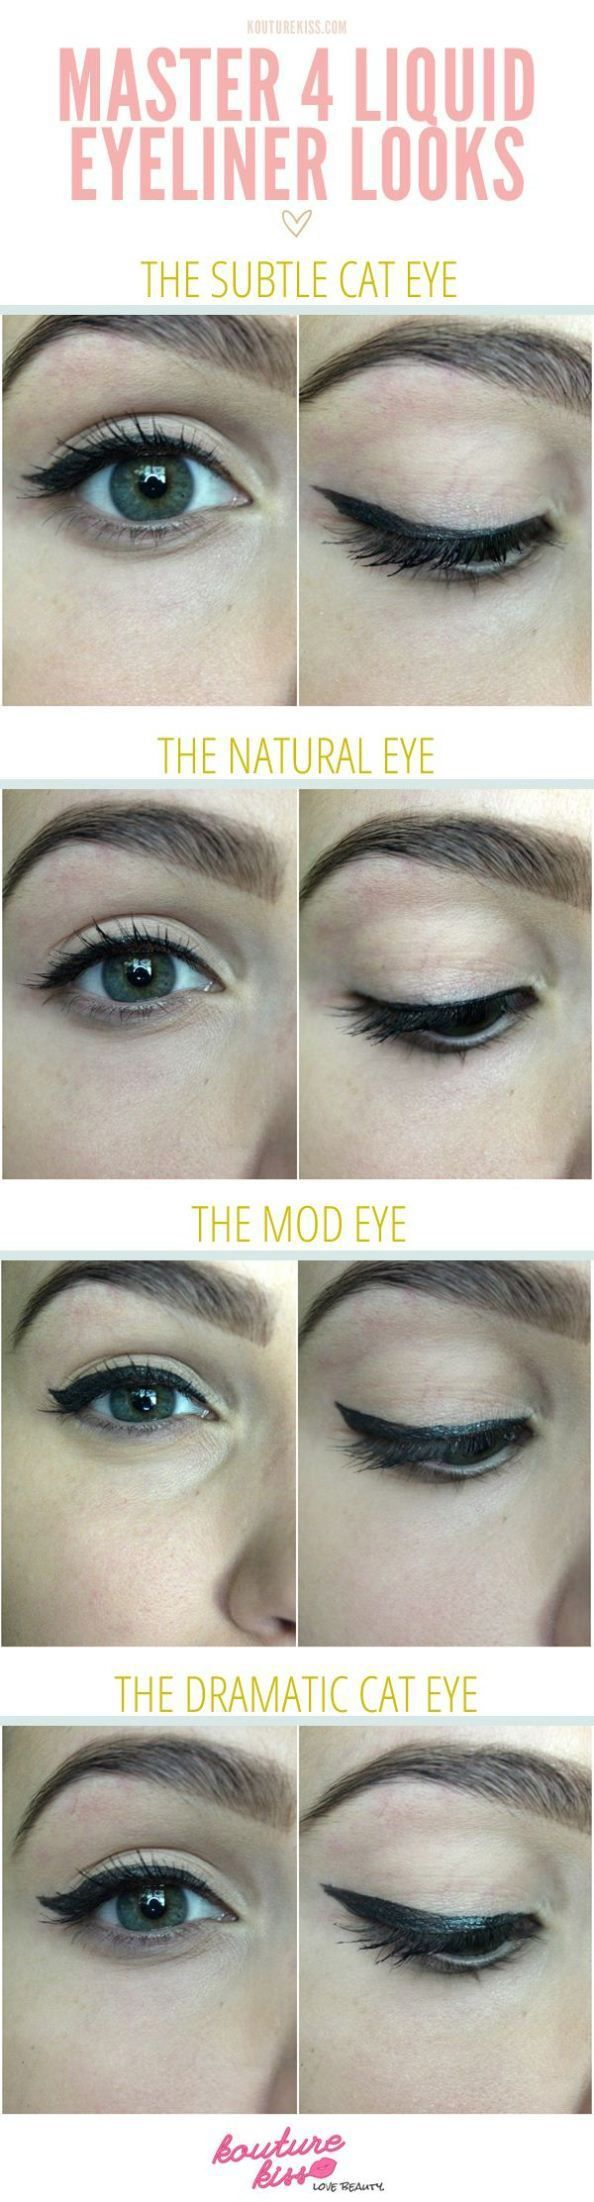 liquid eyeliner tips and tricks